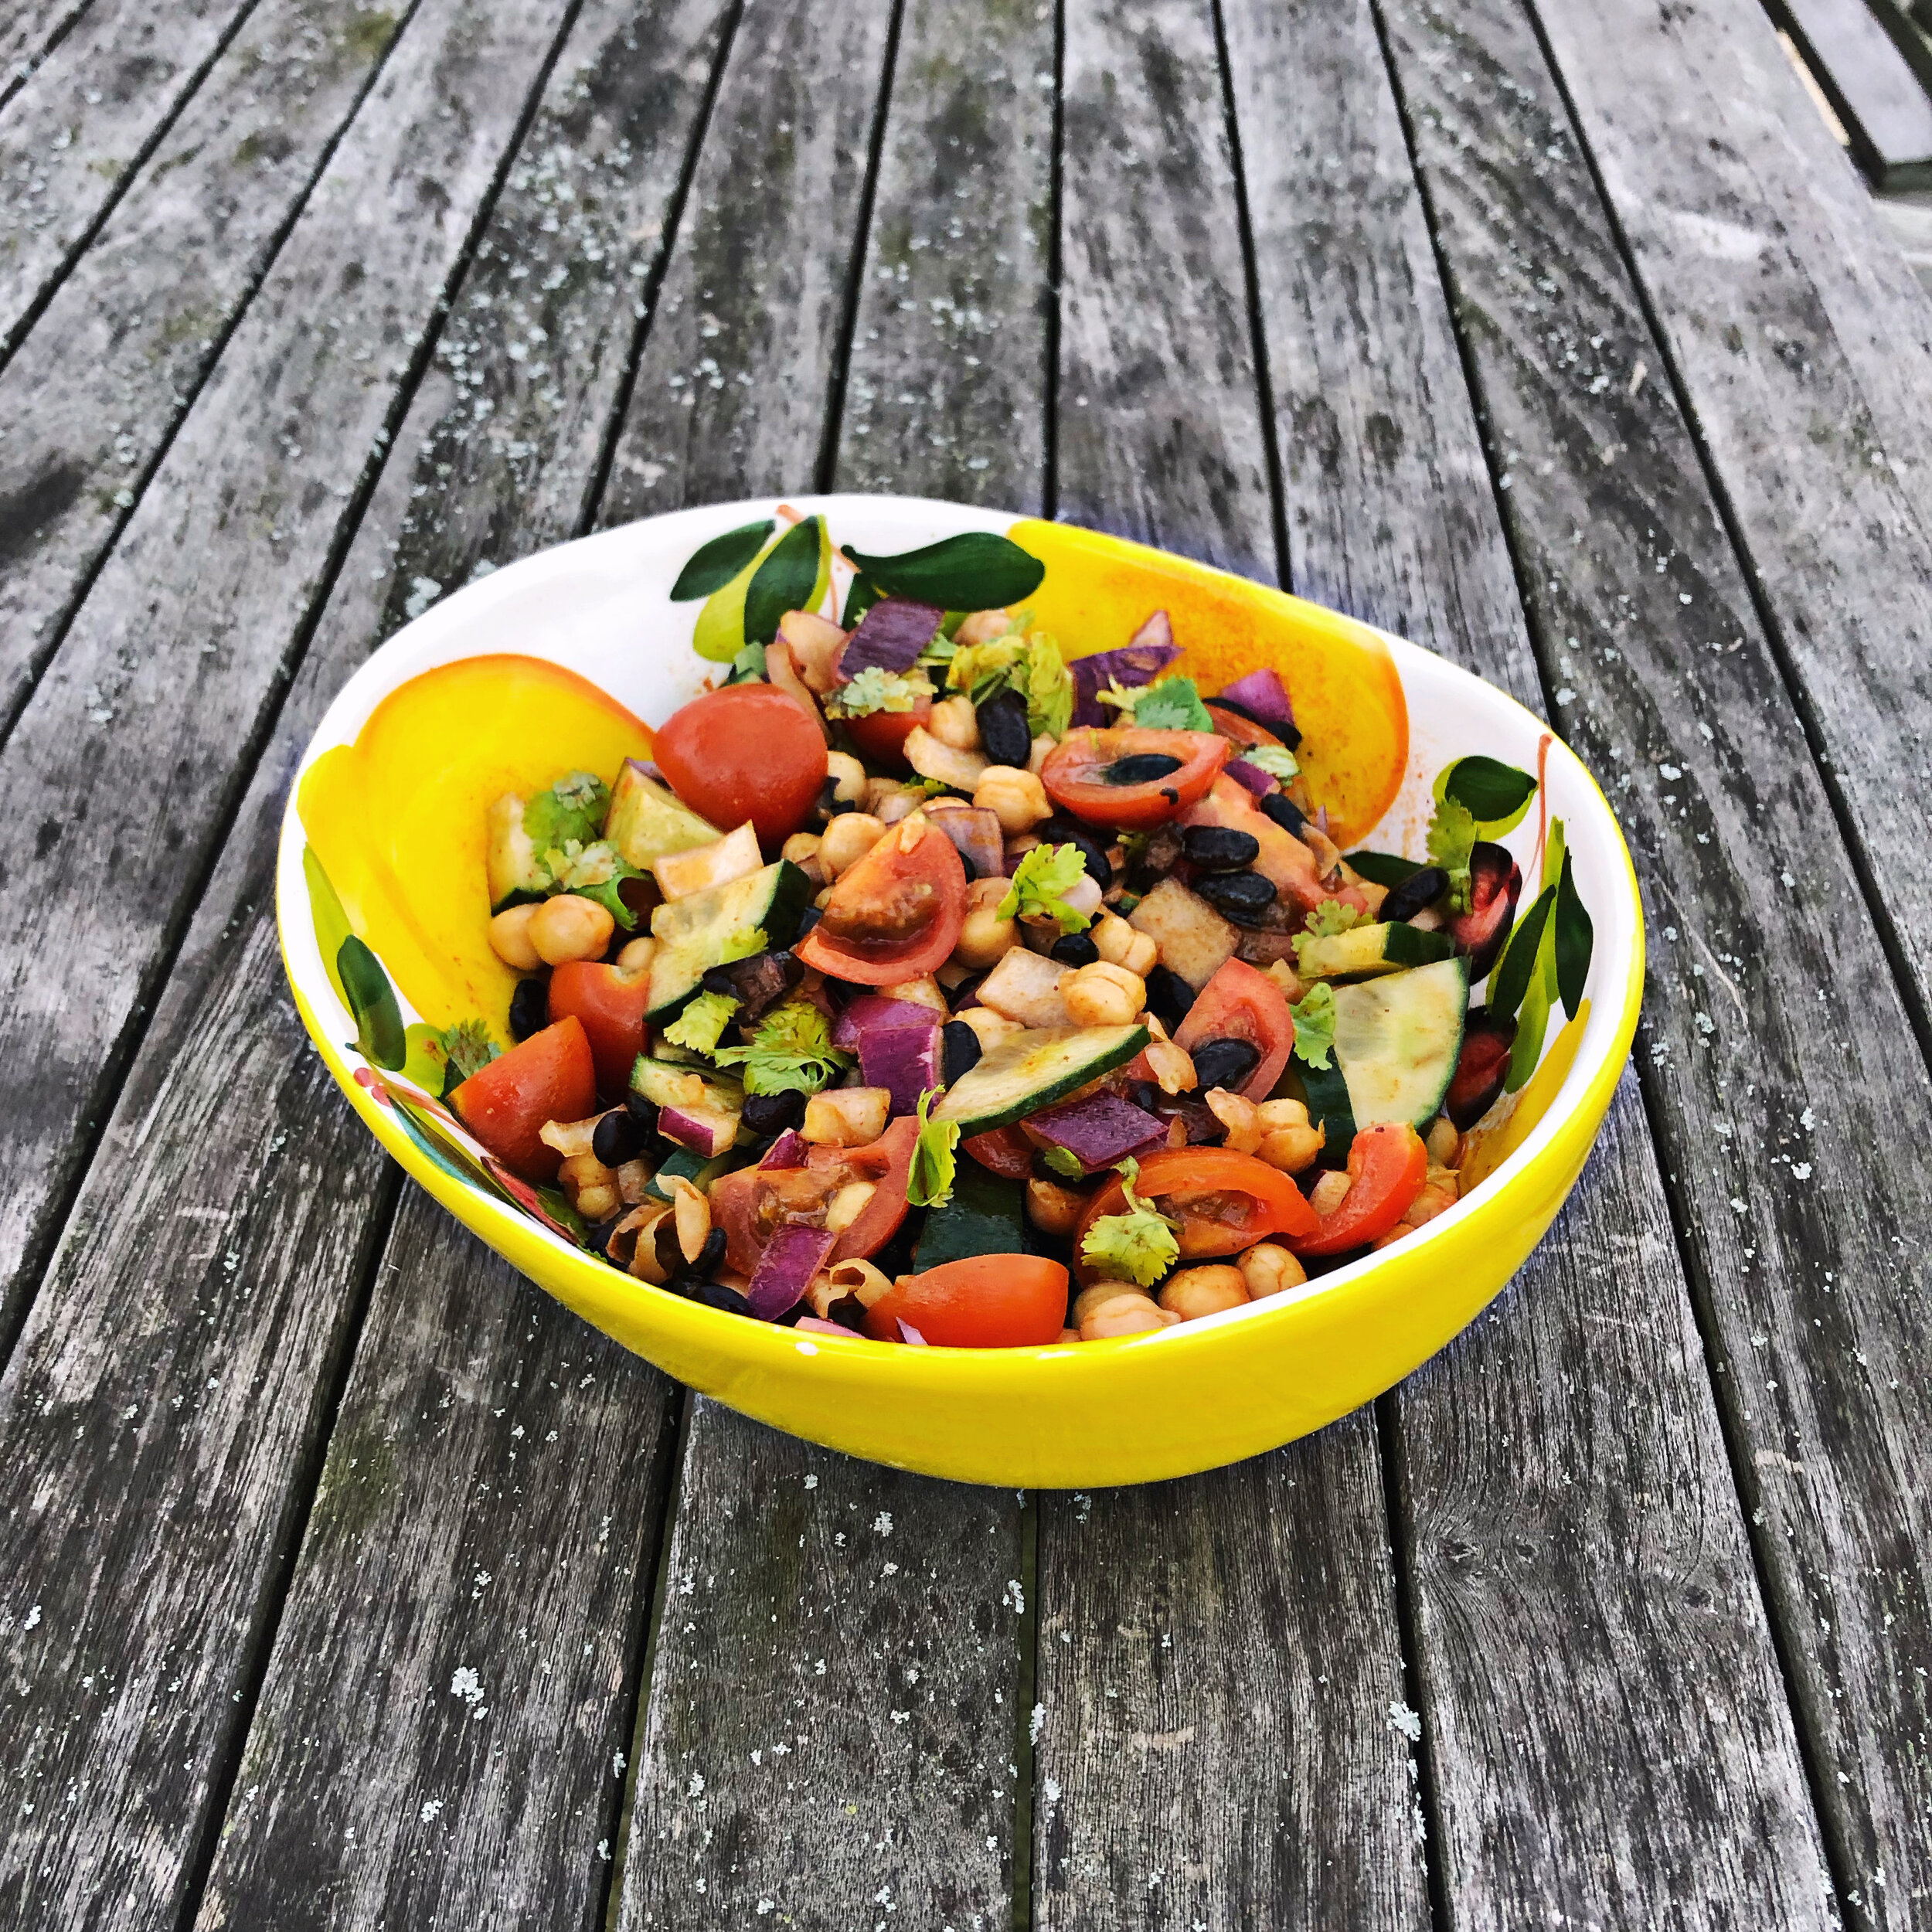 excellent source of plant protein in vegan salads